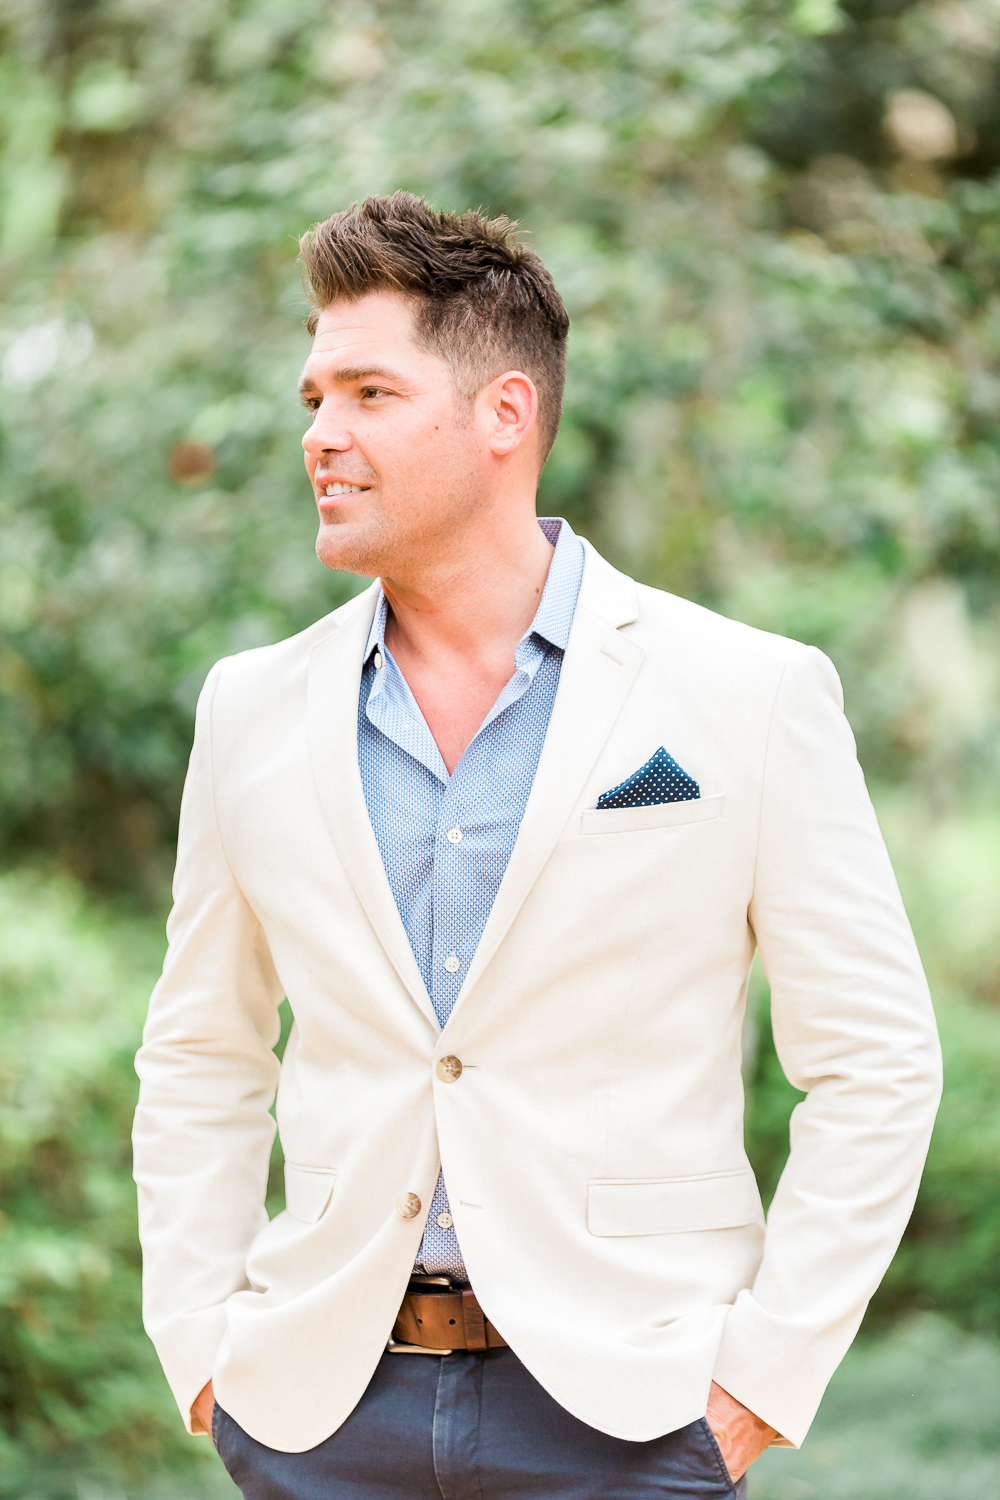 Styling guide for men for engagement pictures